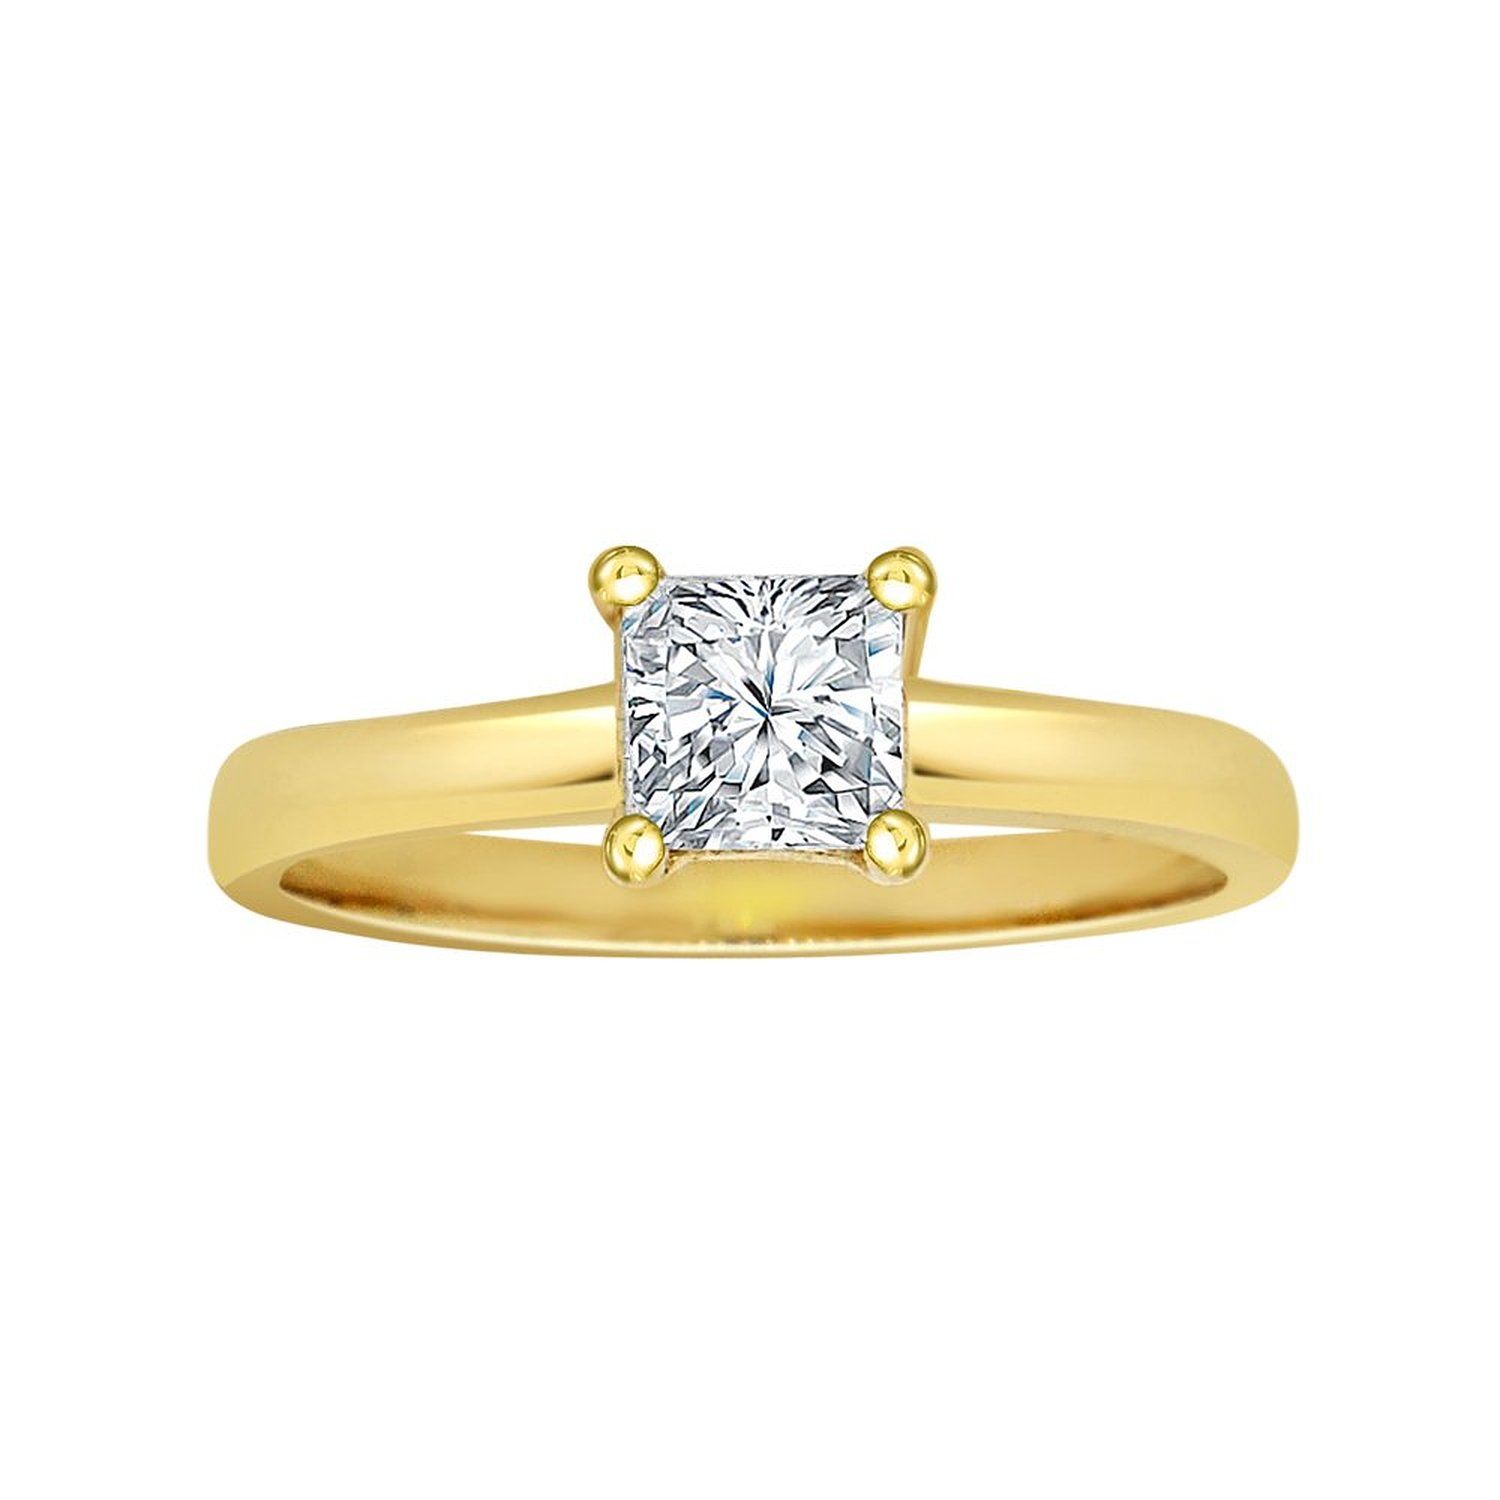 14k Yellow Gold, Solitaire Lady Engagement Wedding Ring Princess Cut Brilliant Created Gem 0.75ct